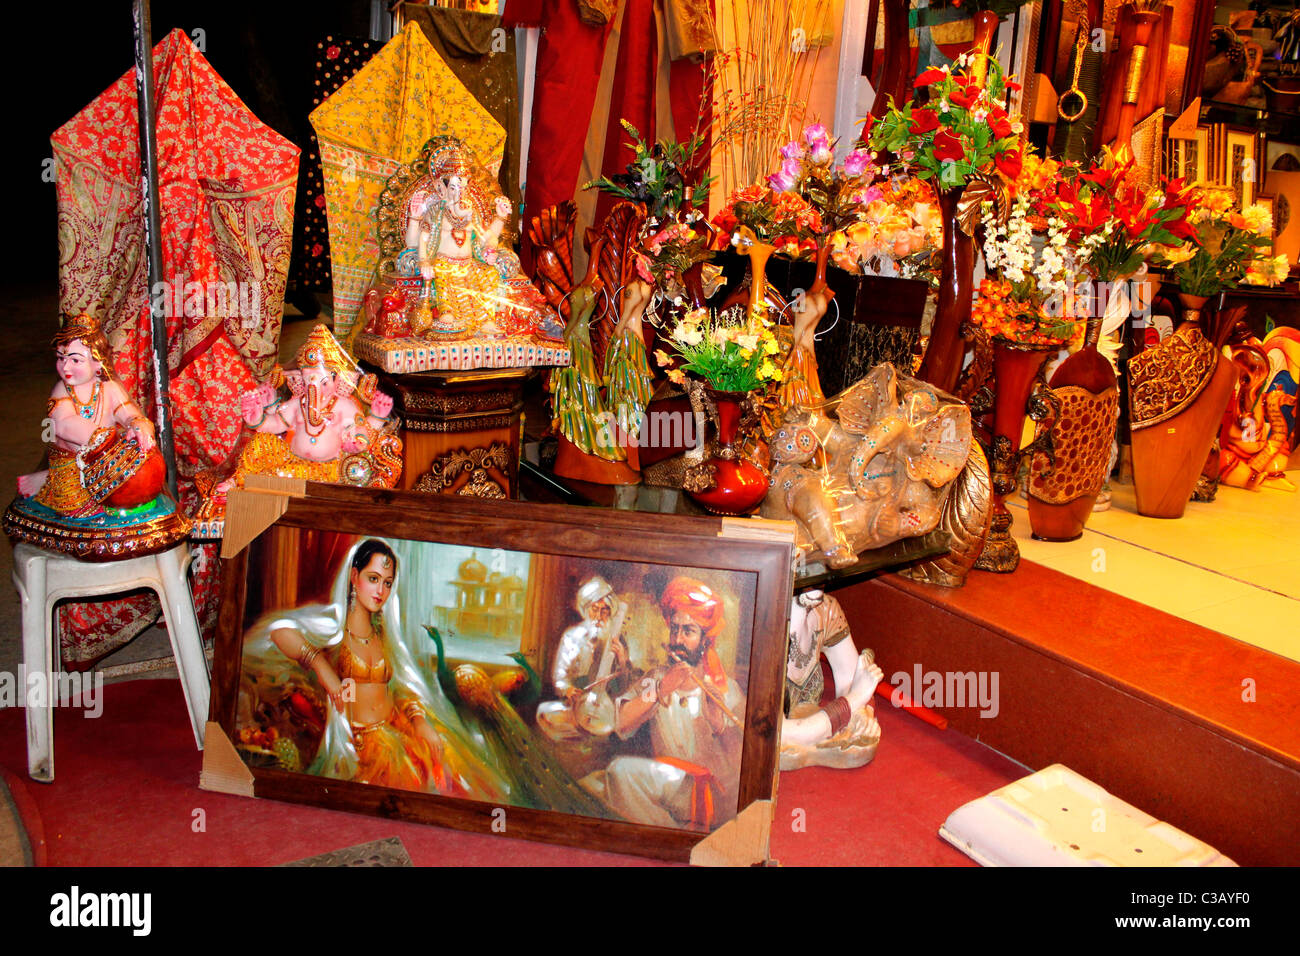 A Handicraft Shop Selling Paintings, Idols, Handicrafts, Decorative Items  In India